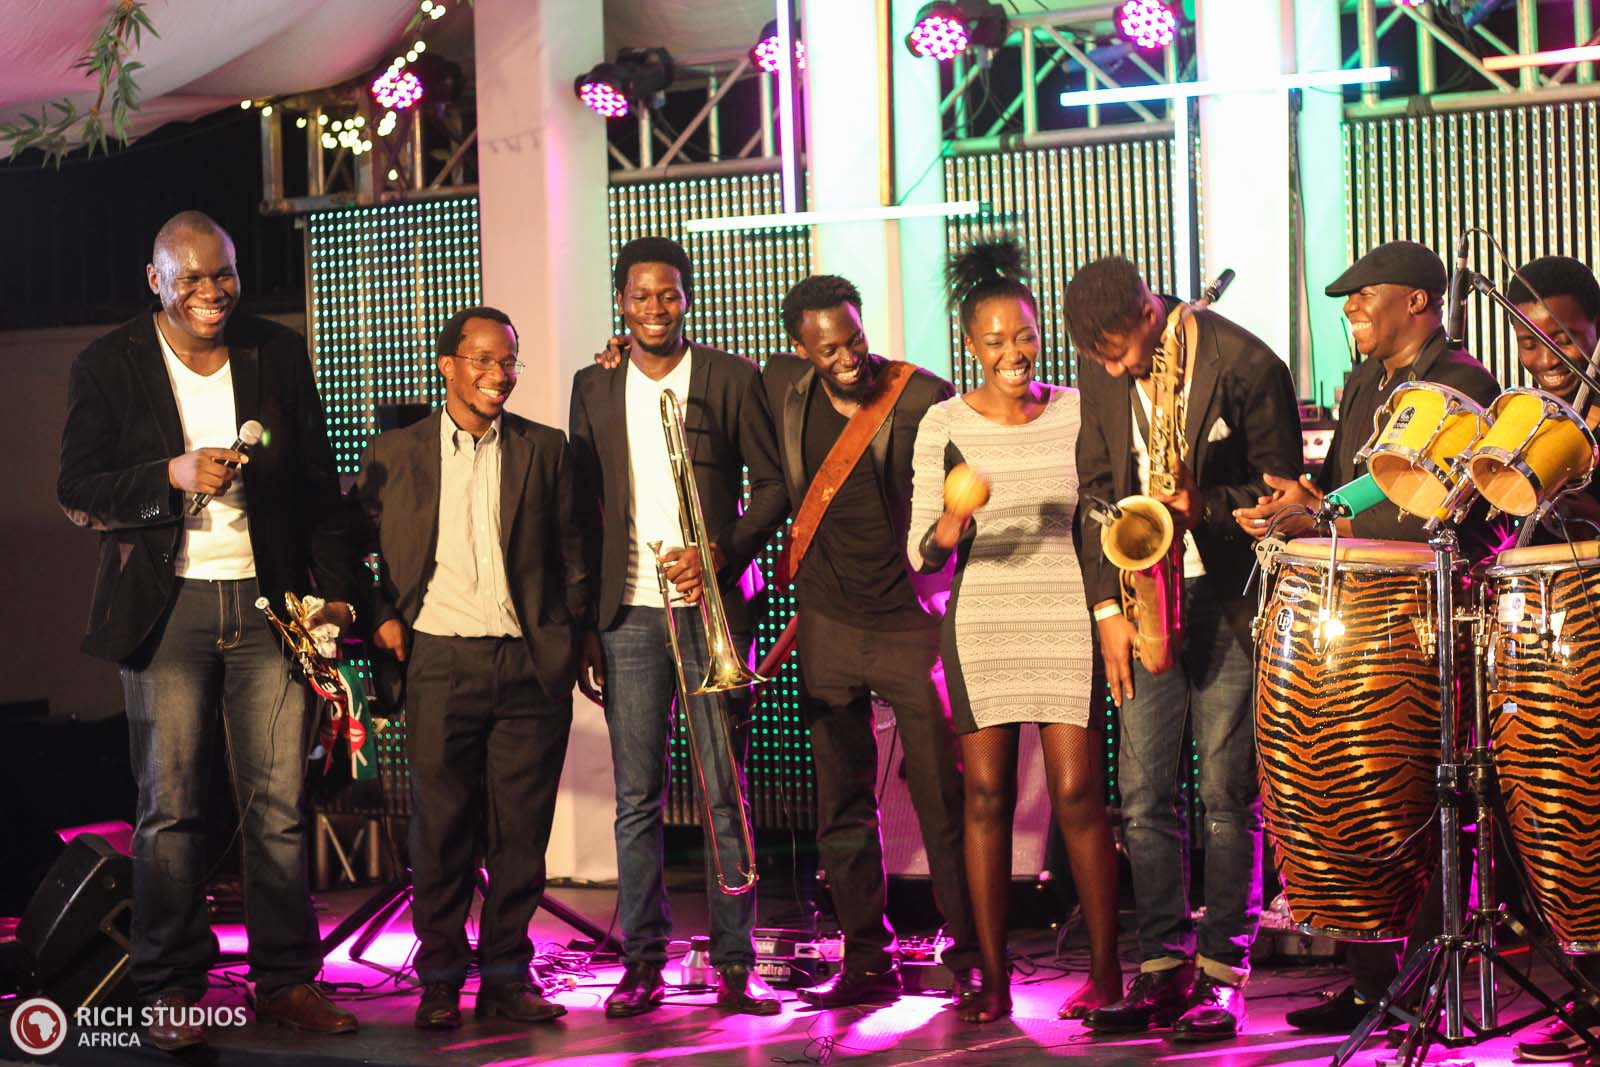 The Nairobi Horns Project